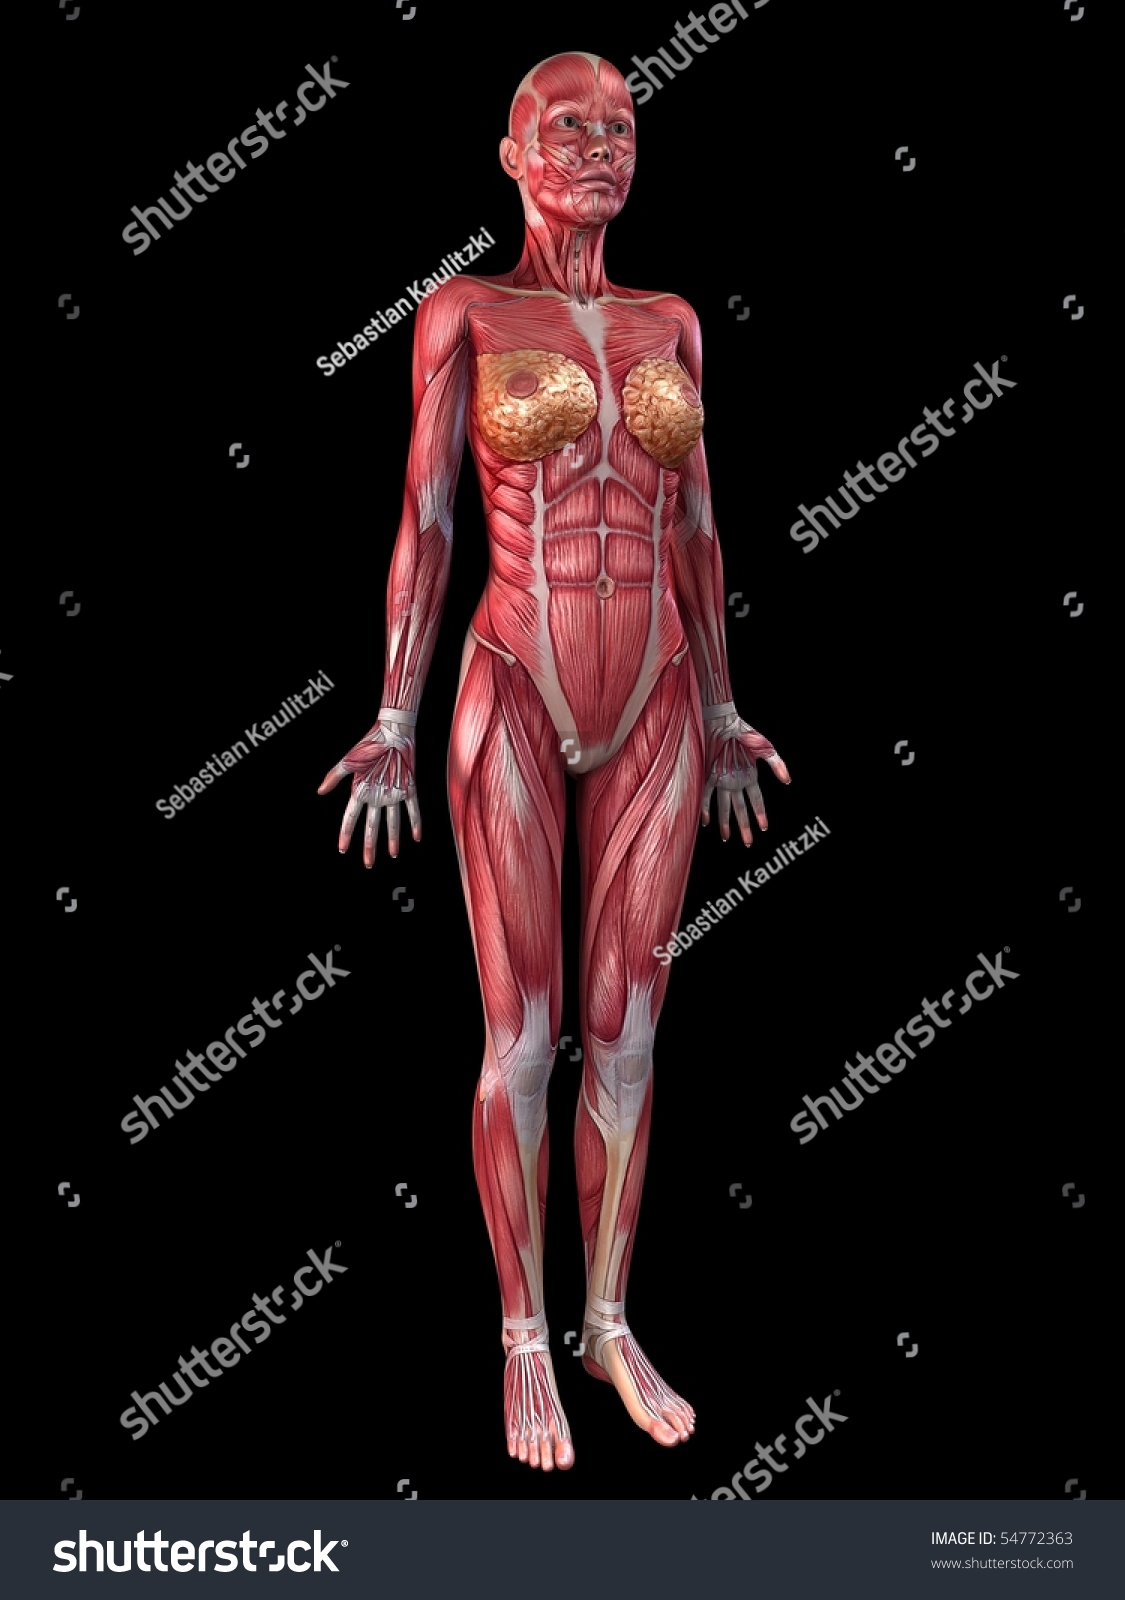 female muscular system stock illustration 54772363 - shutterstock, Muscles